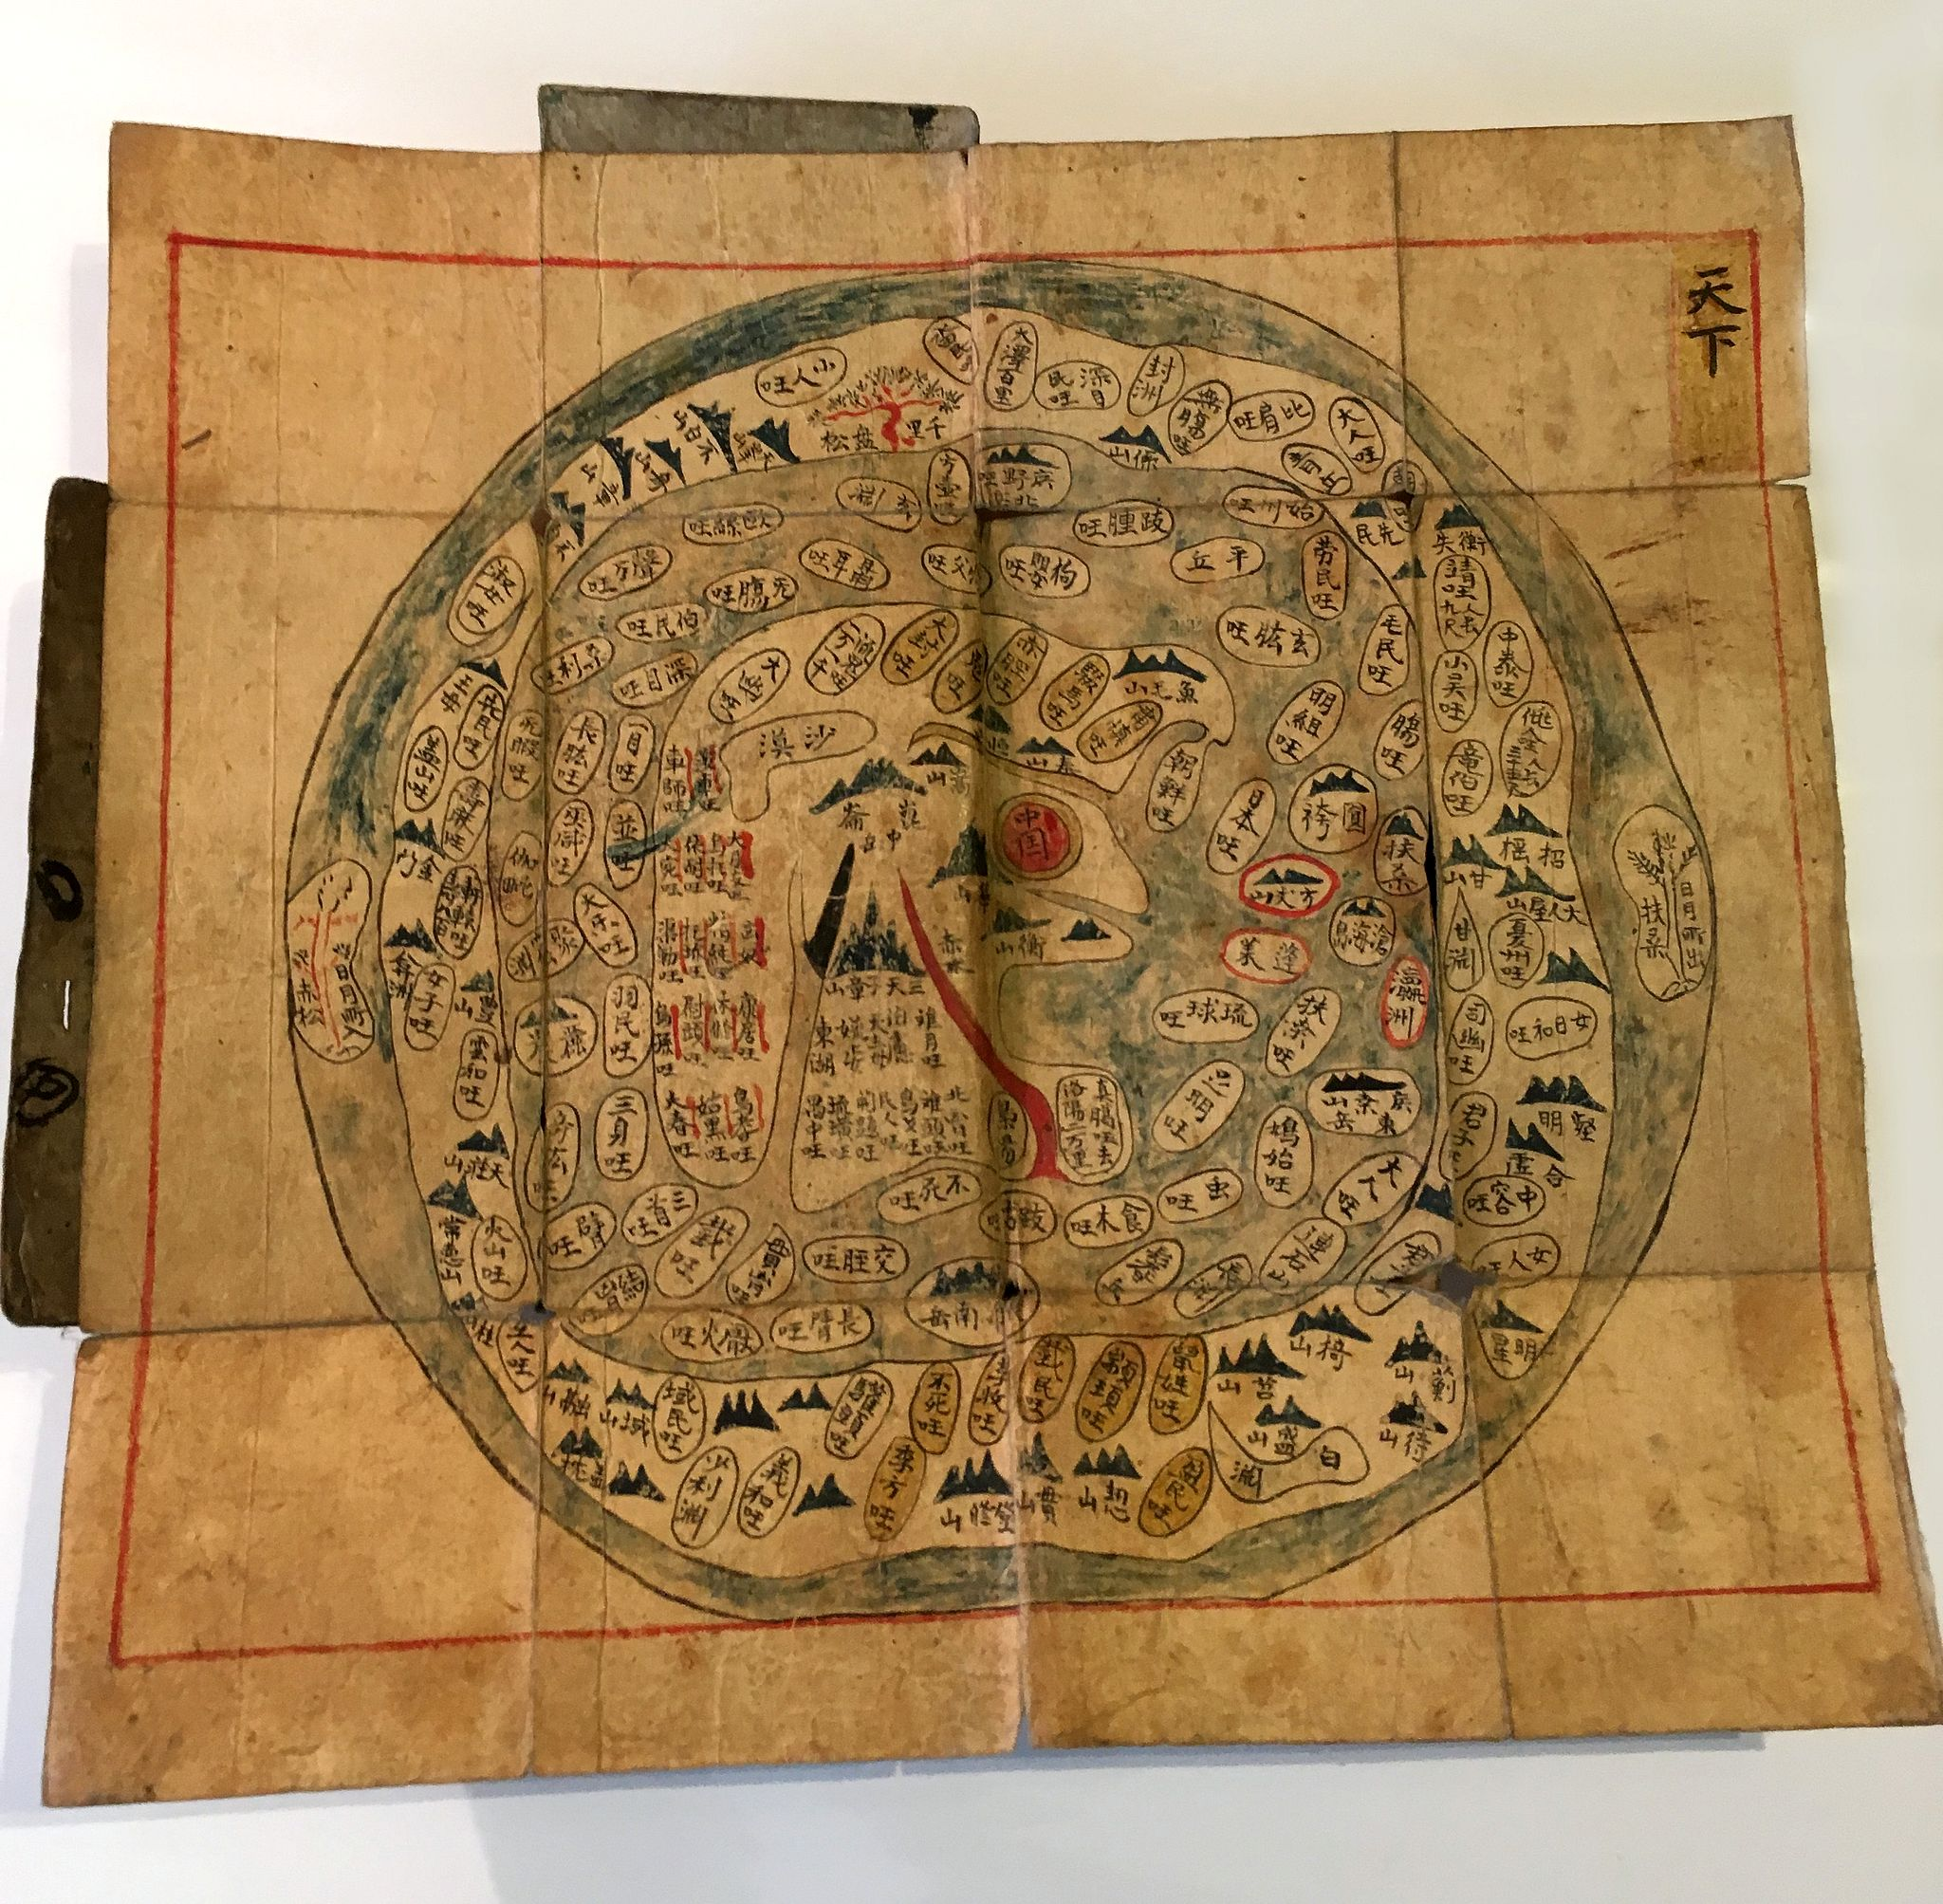 CH'ONHA CHIDO, [Atlas of all under Heaven], antique map, old maps